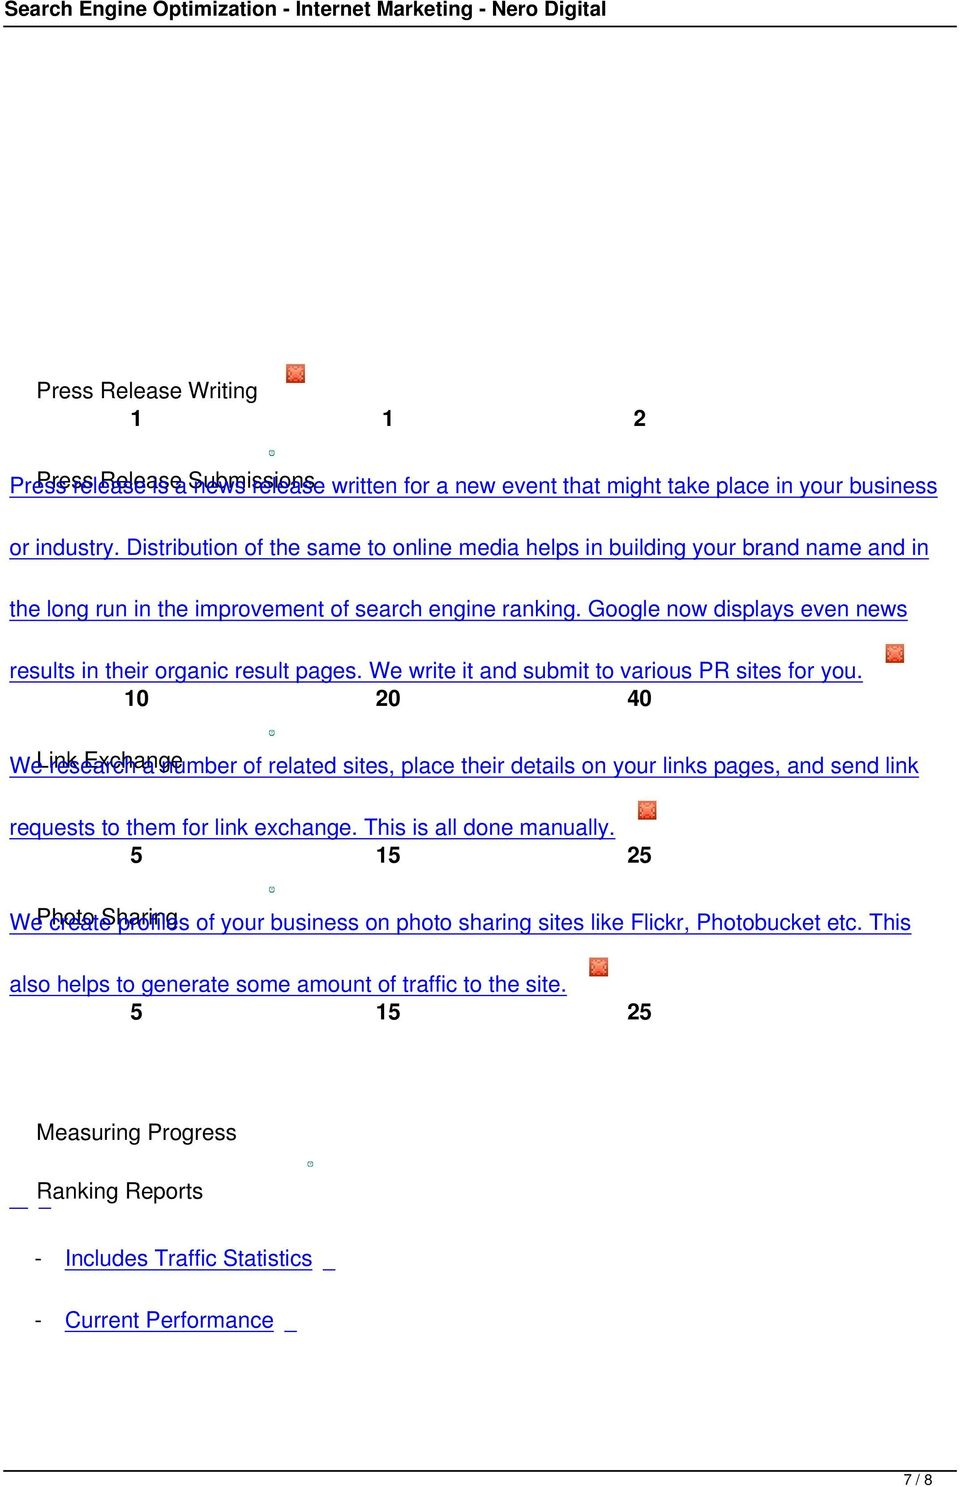 Google now displays even news results in their organic result pages. We write it and submit to various PR sites for you.